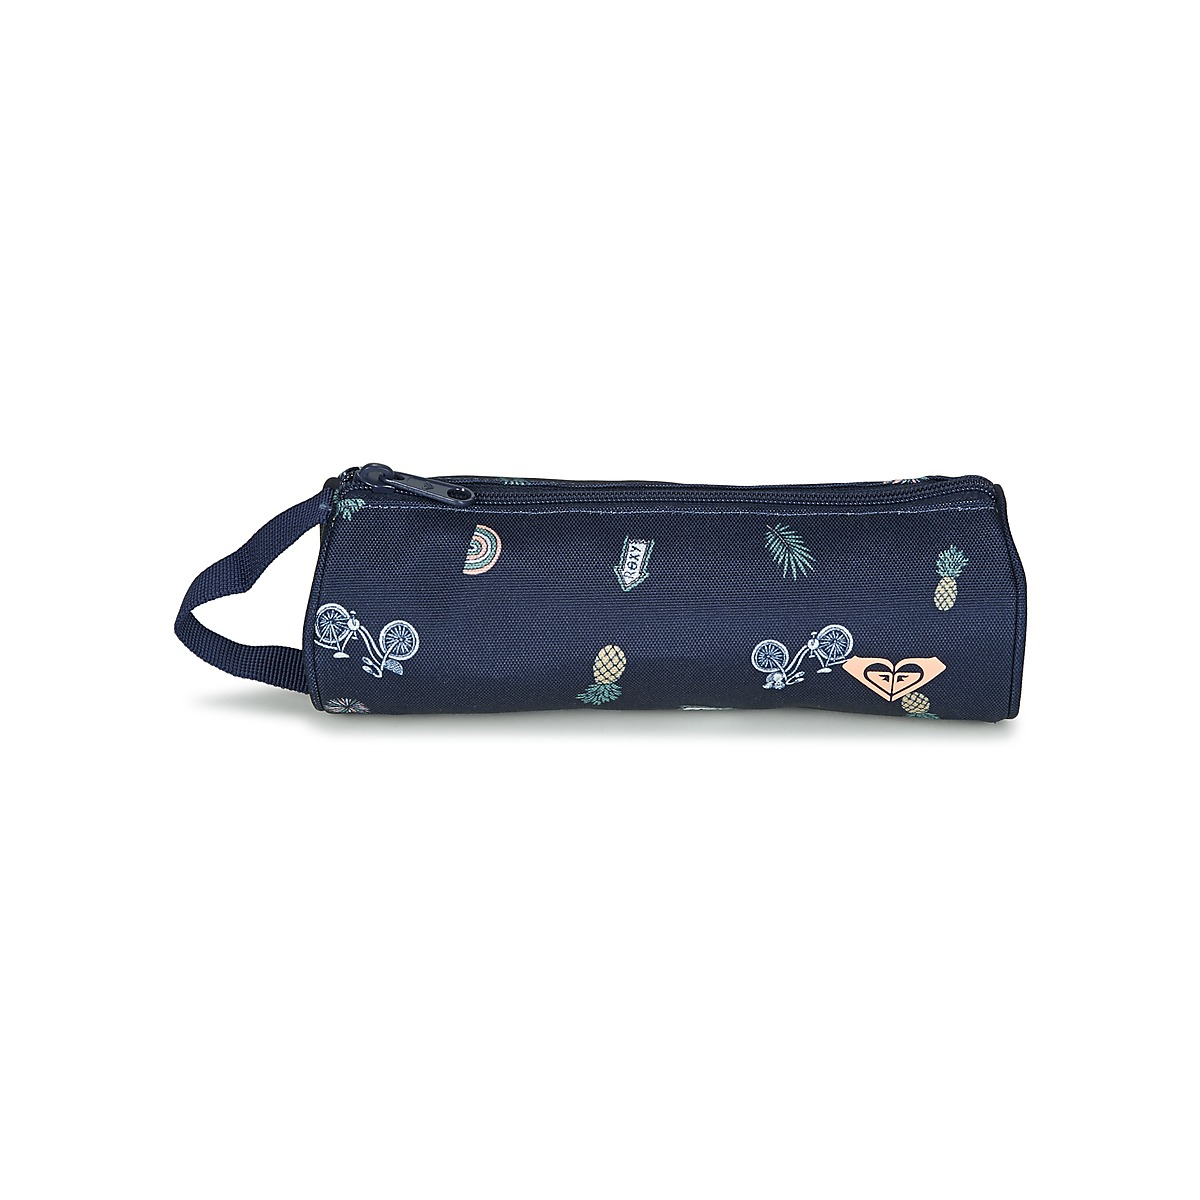 Trousse donna Roxy  OFF THE WALL  Blu